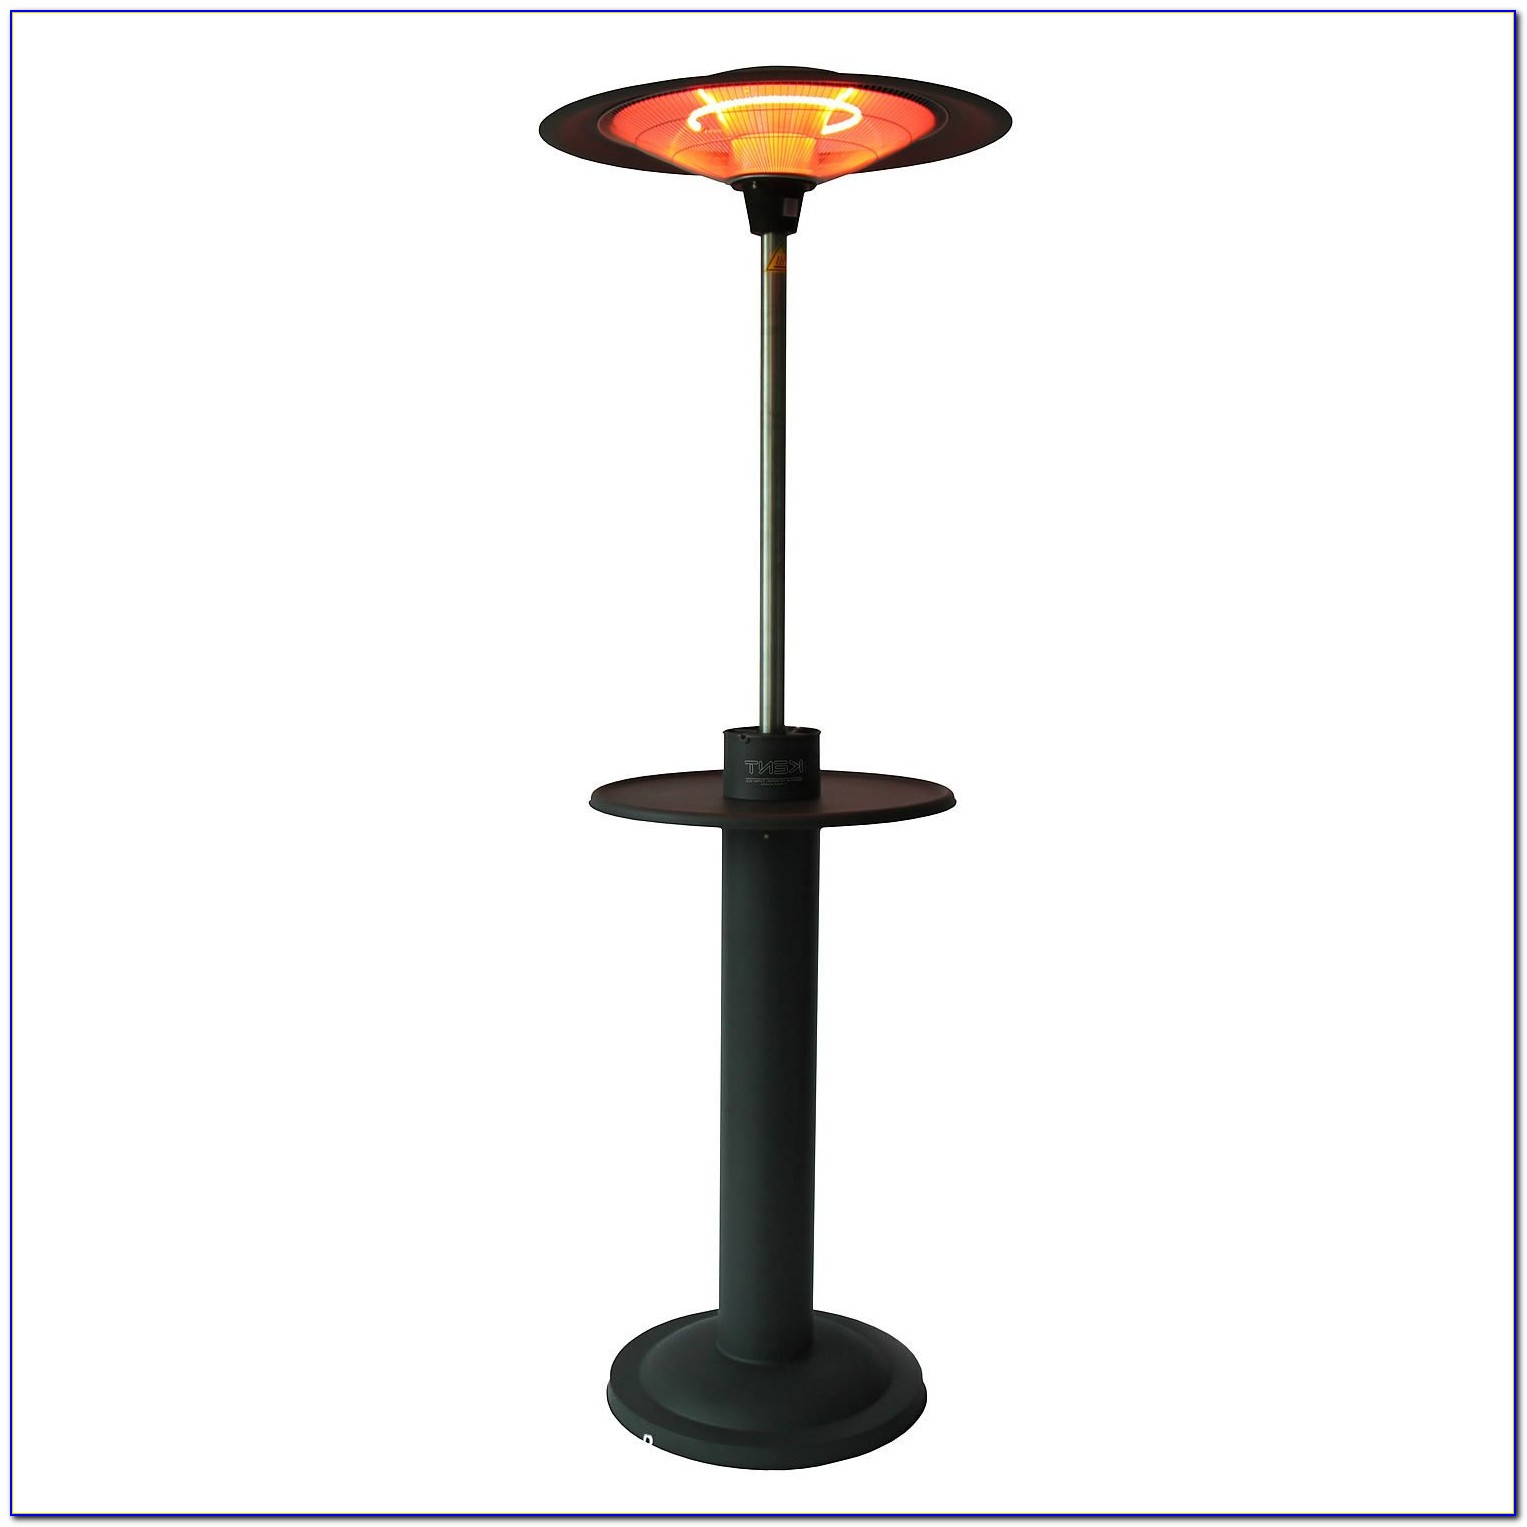 Firefly Electric Tabletop Patio Heater